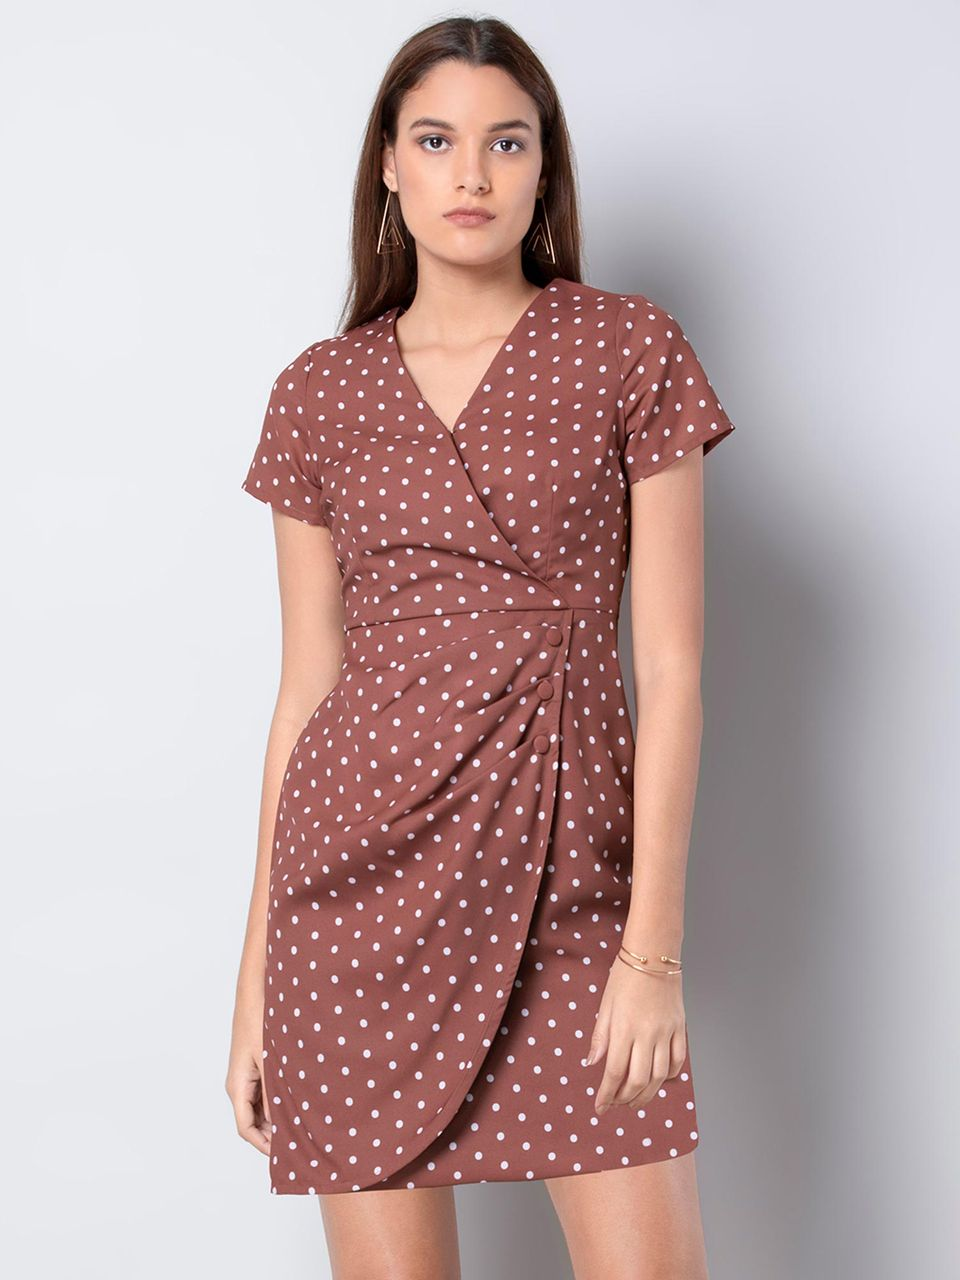 Faballey Brown Polka Wrap Dress